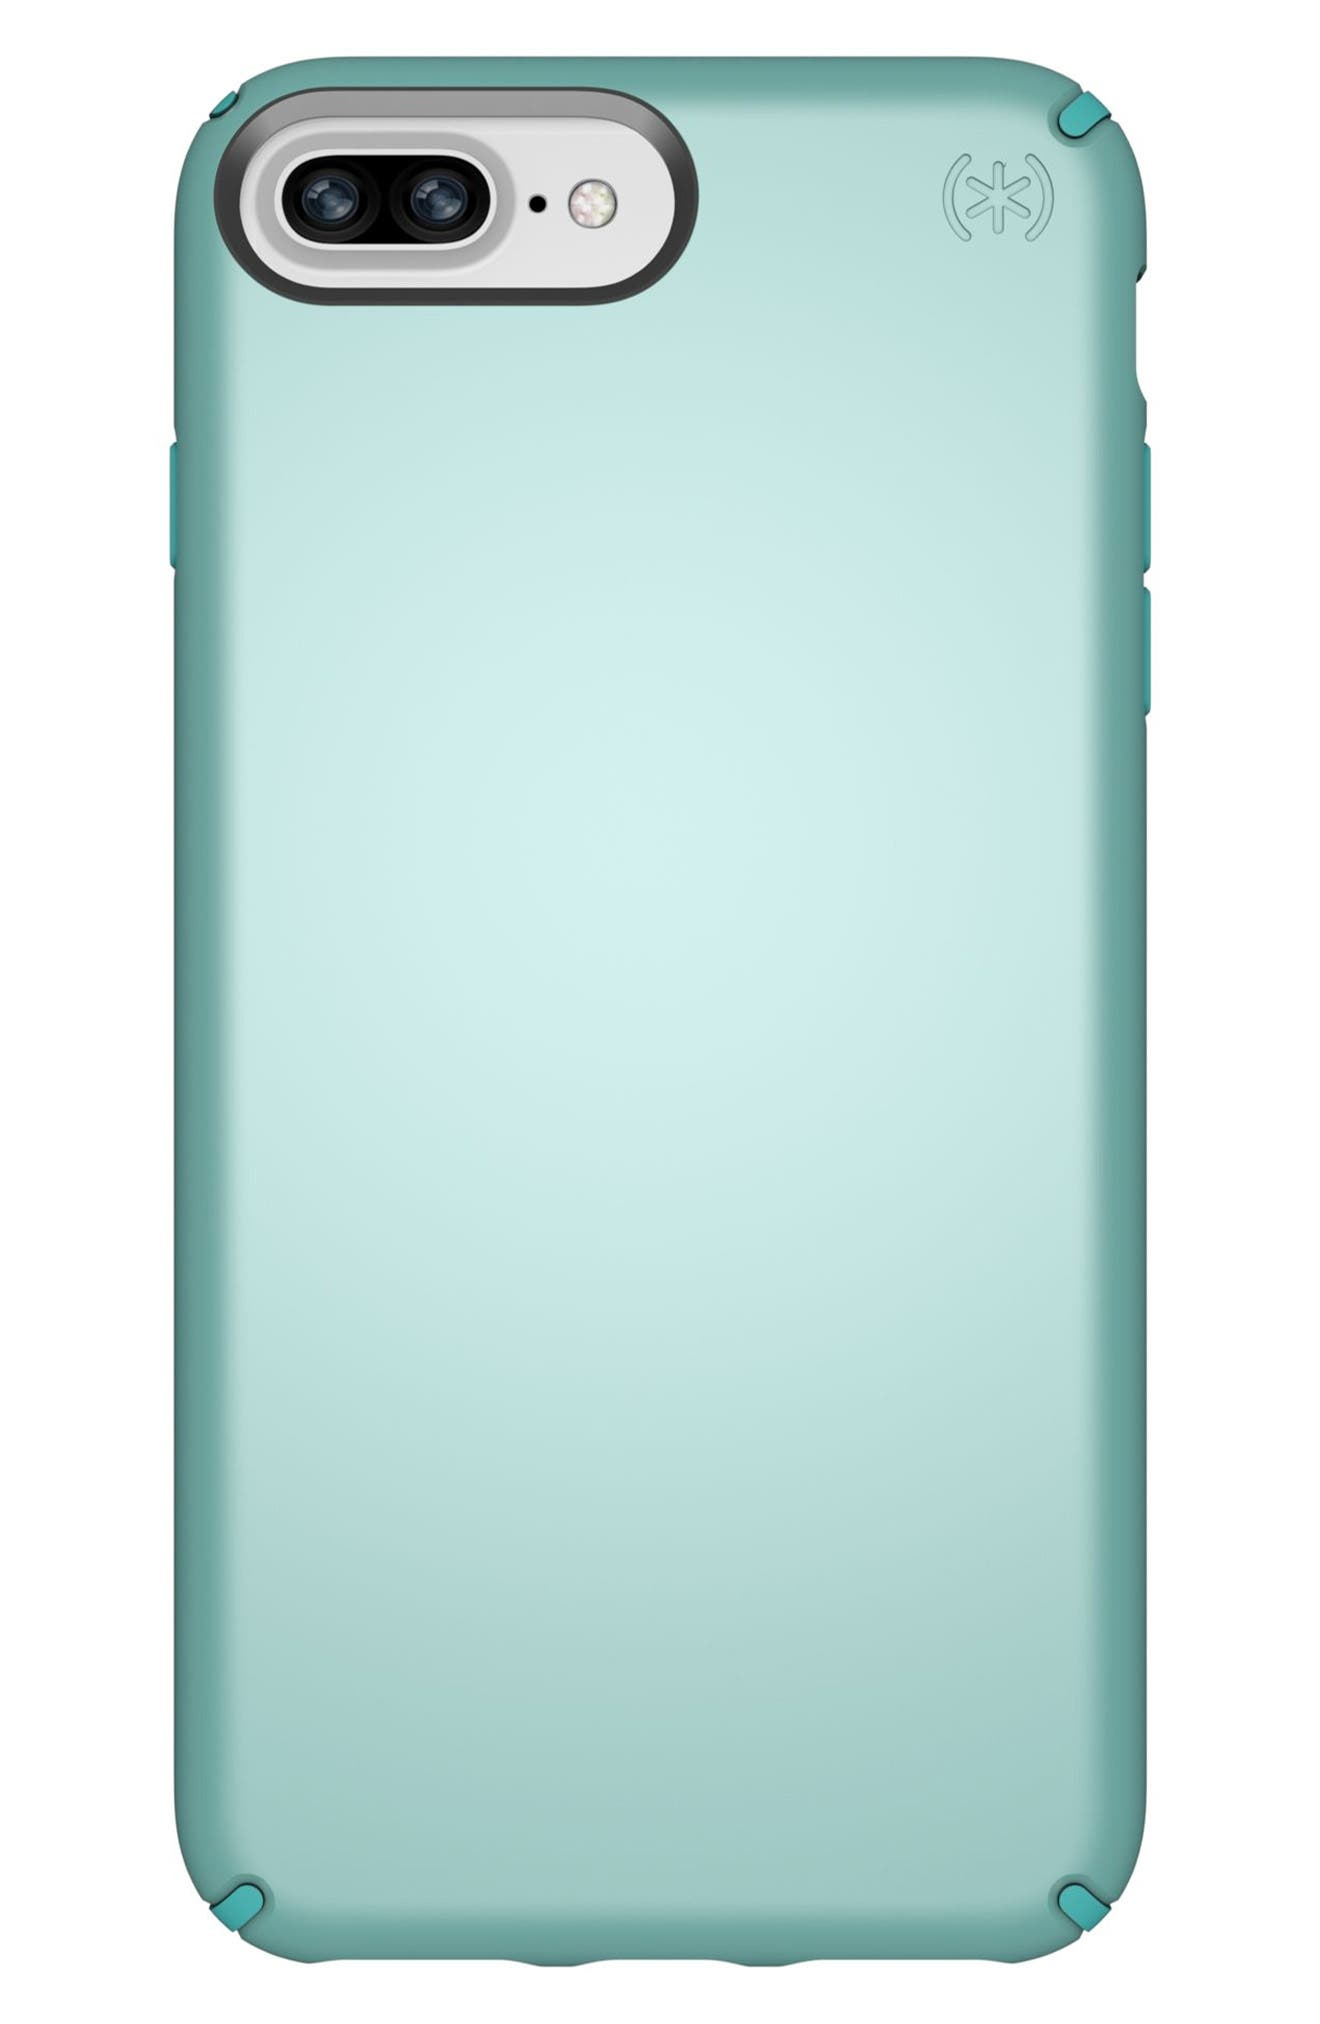 iPhone 6/6s/7/8 Plus Case,                         Main,                         color, Peppermint Green/ Teal